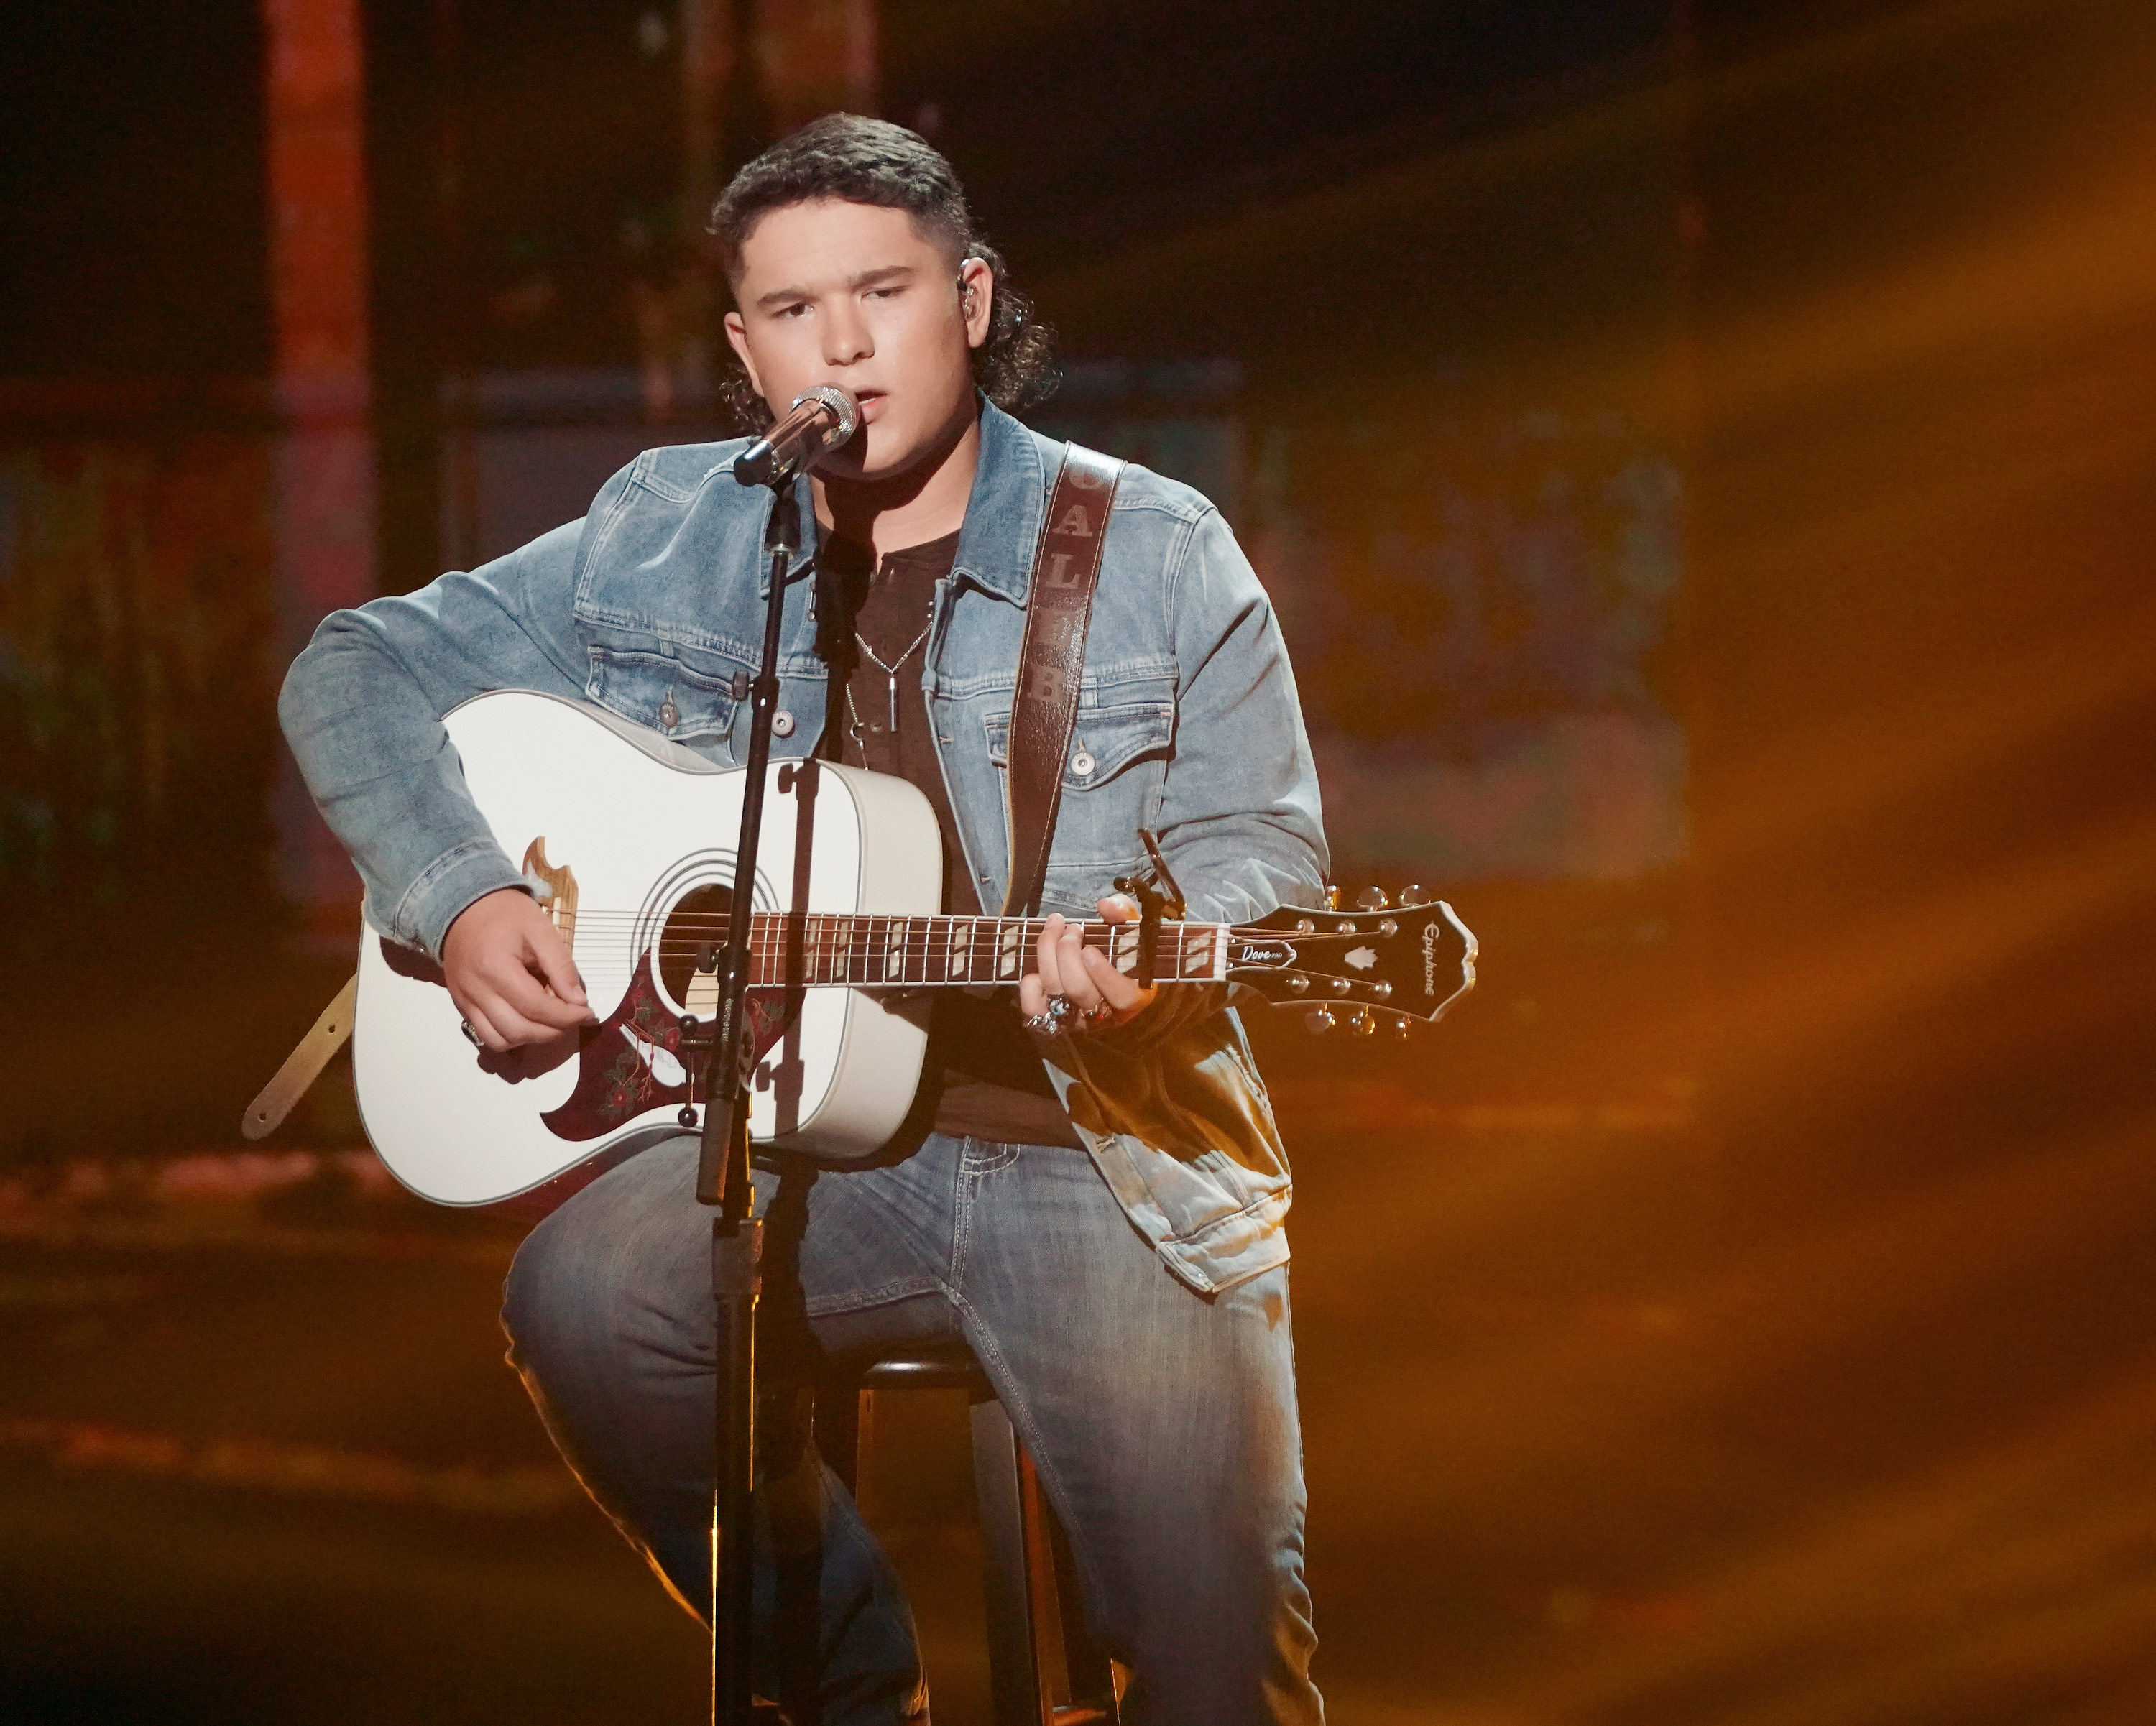 'American Idol' finalist Caleb Kennedy out after KKK-style hood video surfaces